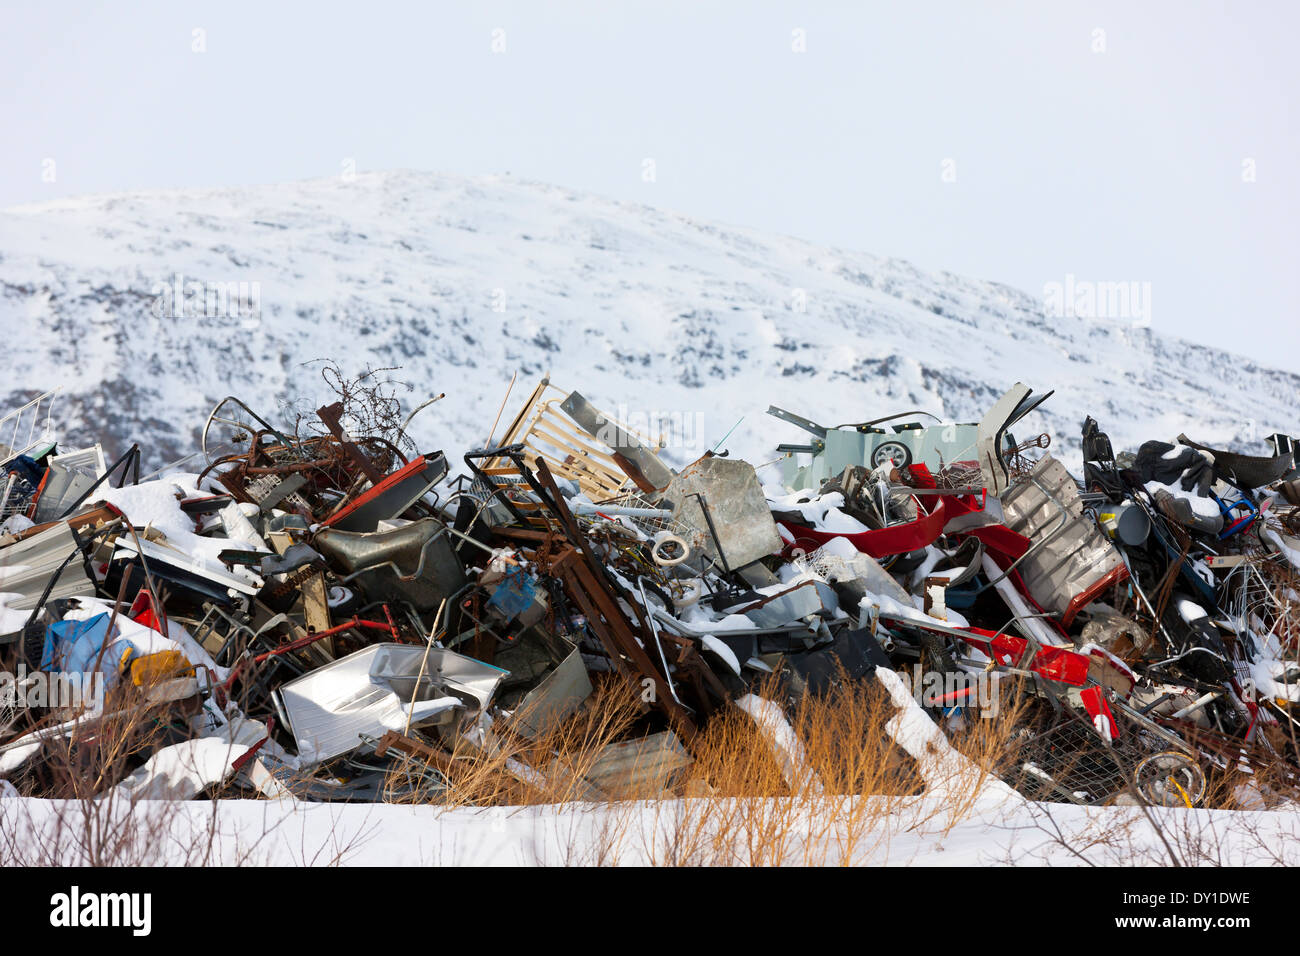 Arctic dumping ground in Norway - Stock Image